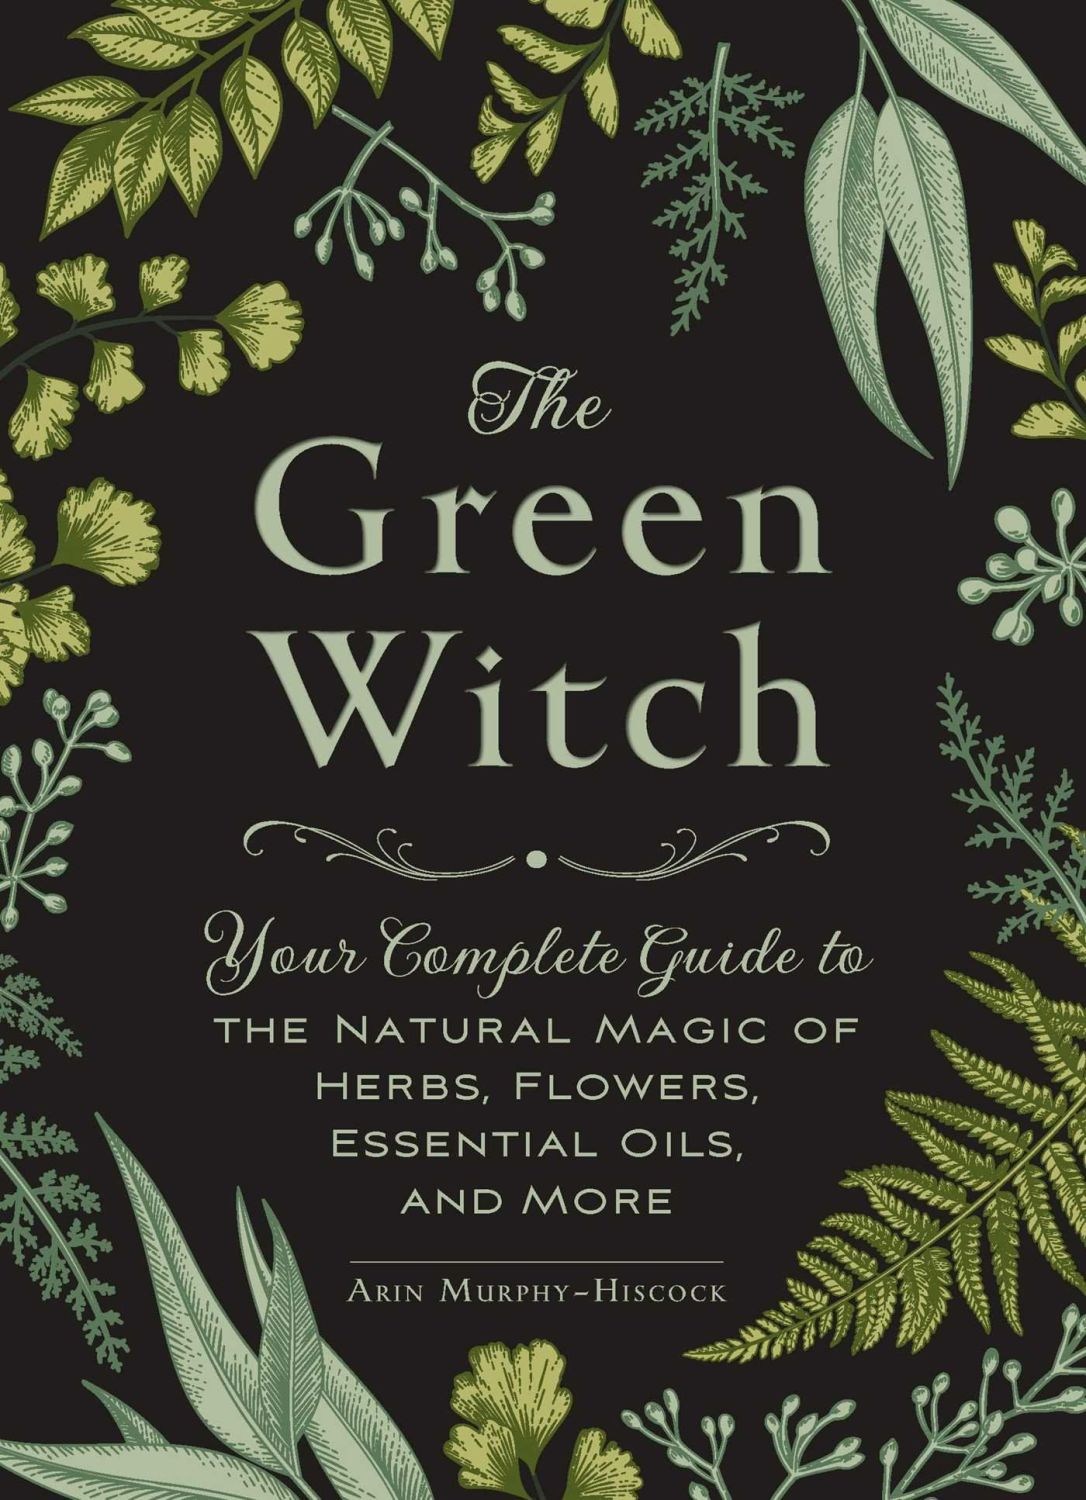 The Green Witch by Arin Murphy-Hiscock